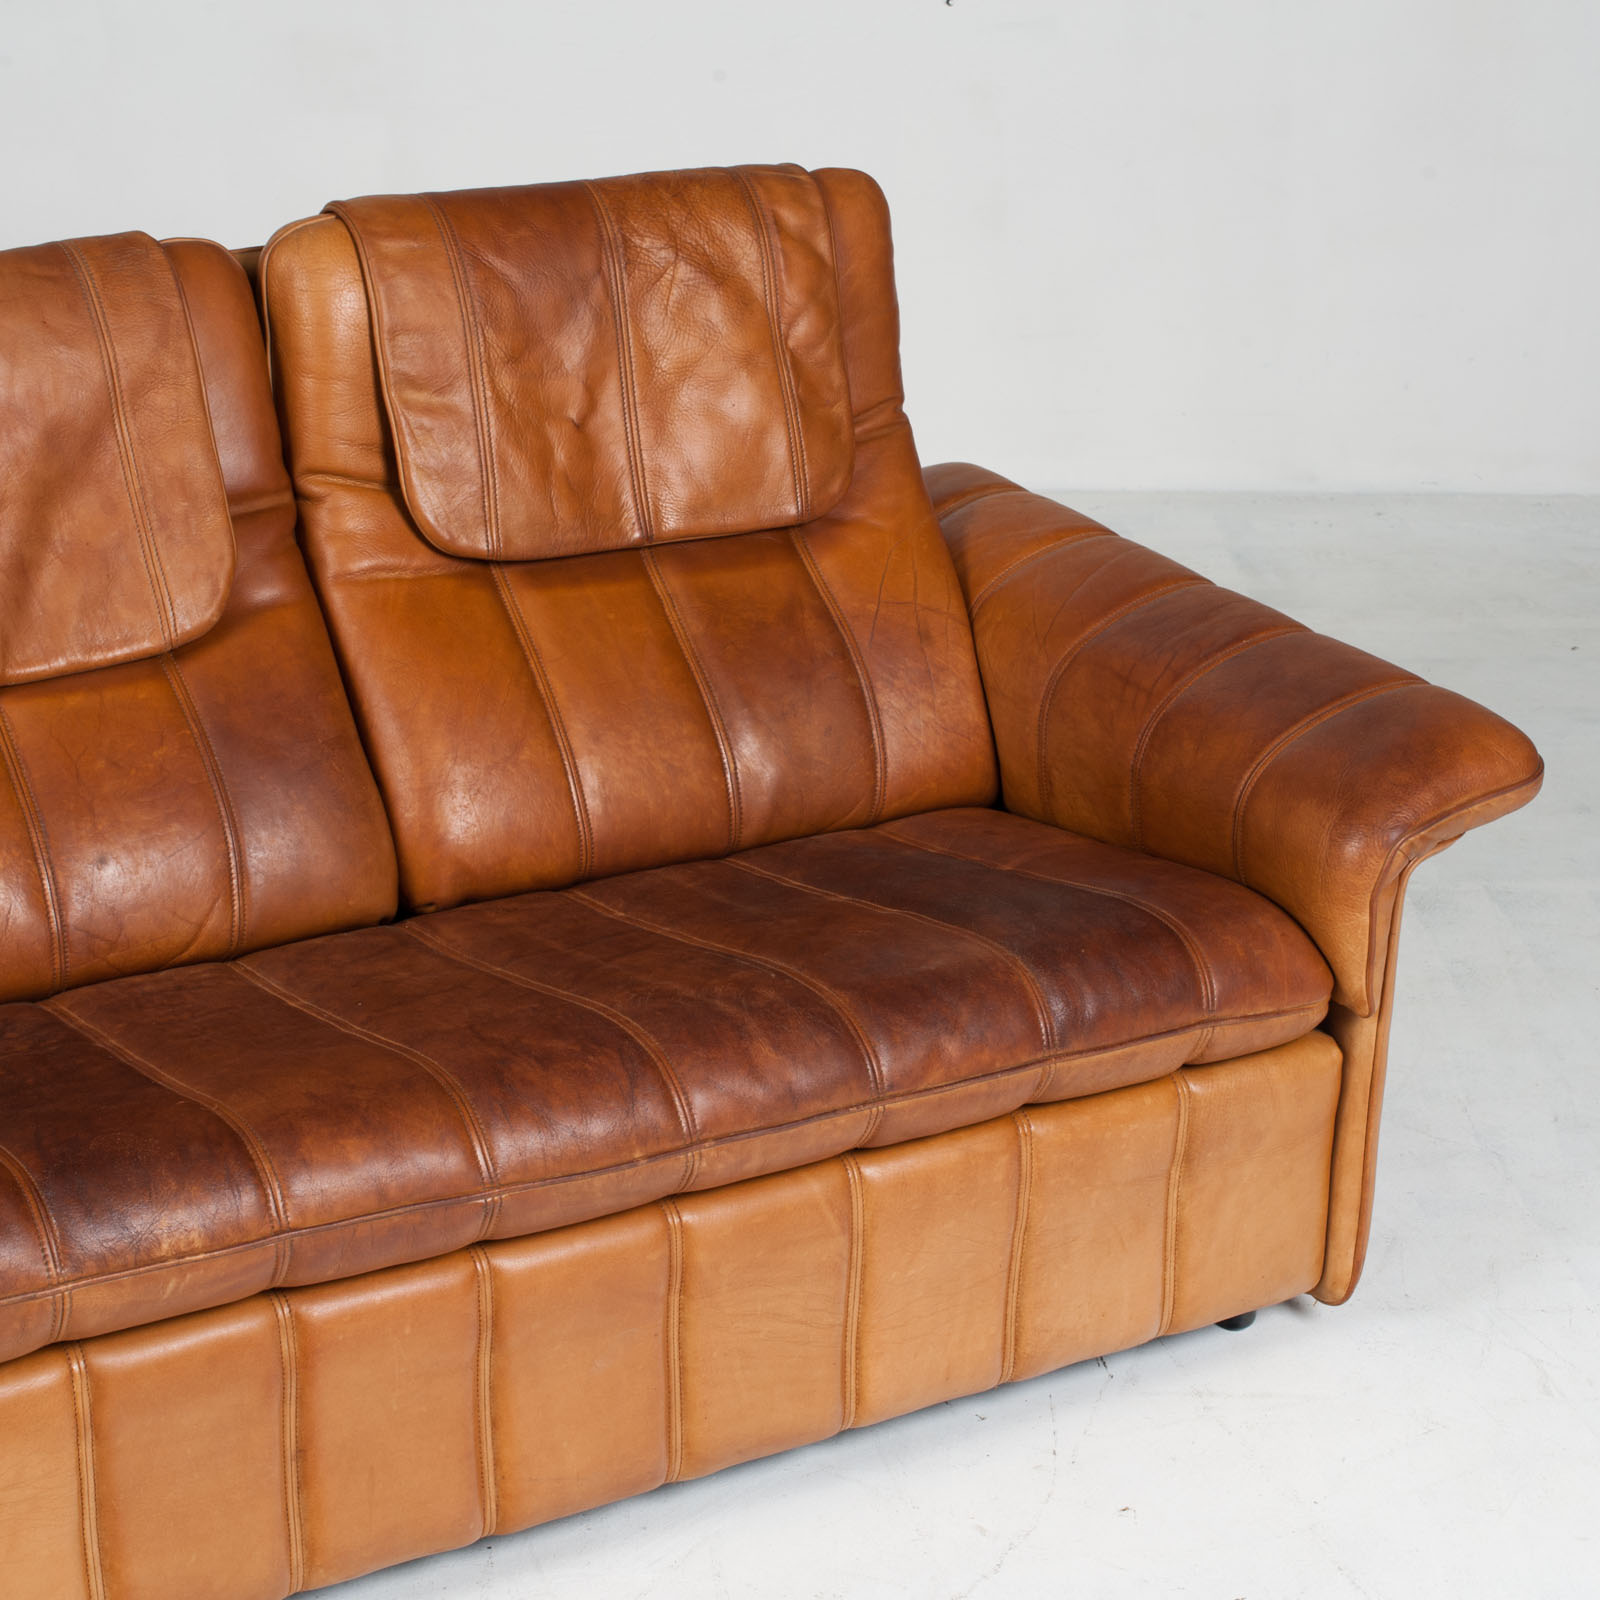 3 Seat Sofa By De Sede In Tan Leather 1970s Switzerland 04